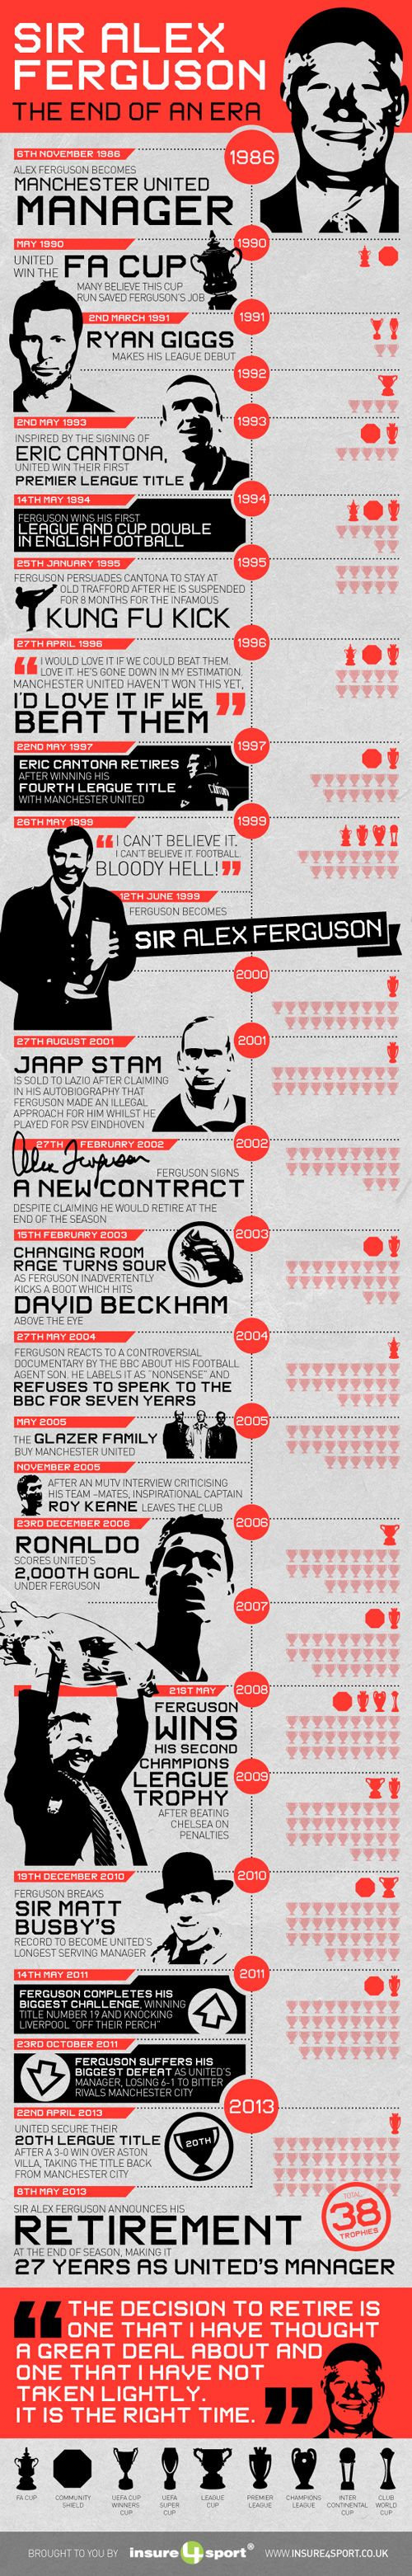 Farewell Fergie Infographic by insure4sport